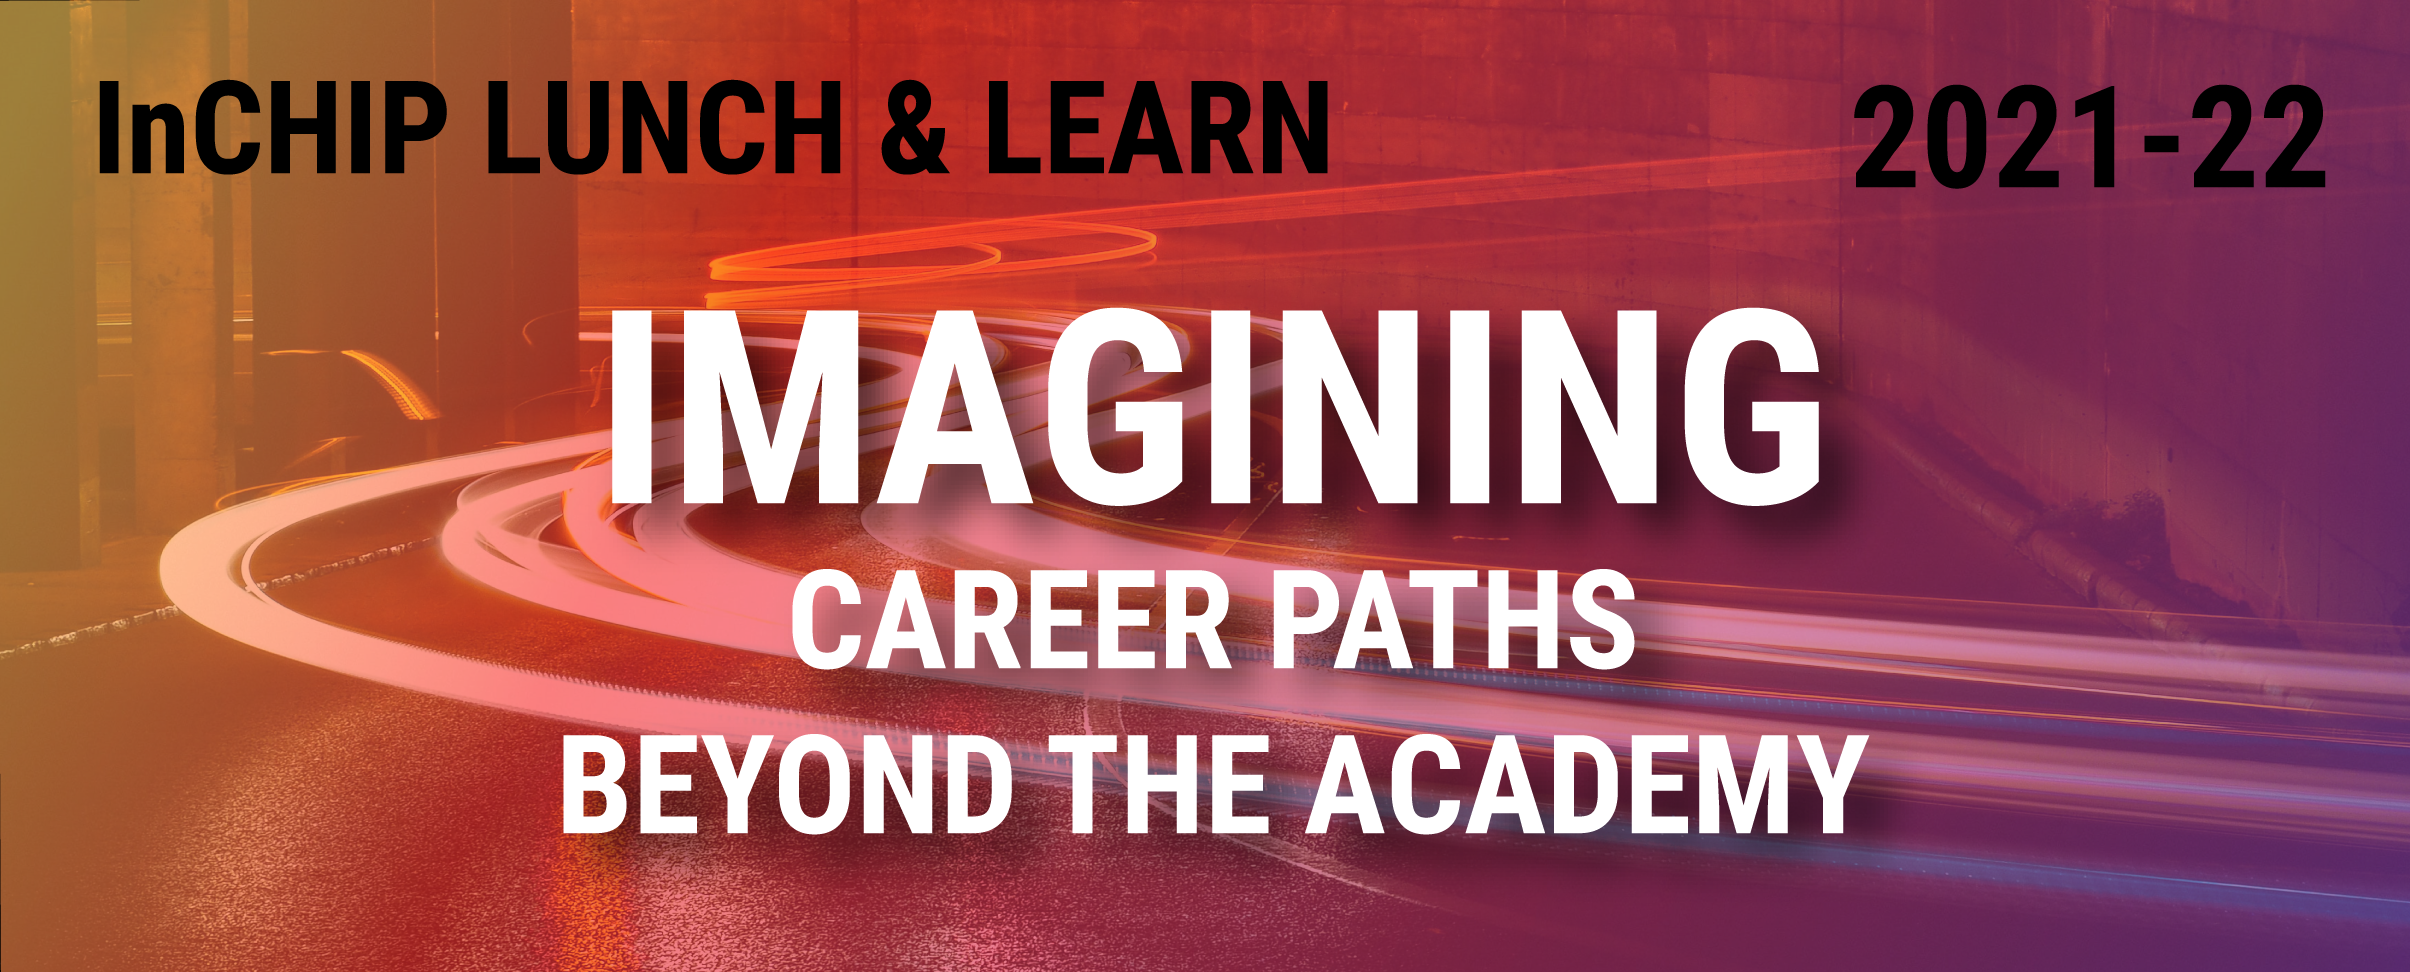 InCHIP Lunch and Learn FY22 Imagining Career Paths Beyond the Academy